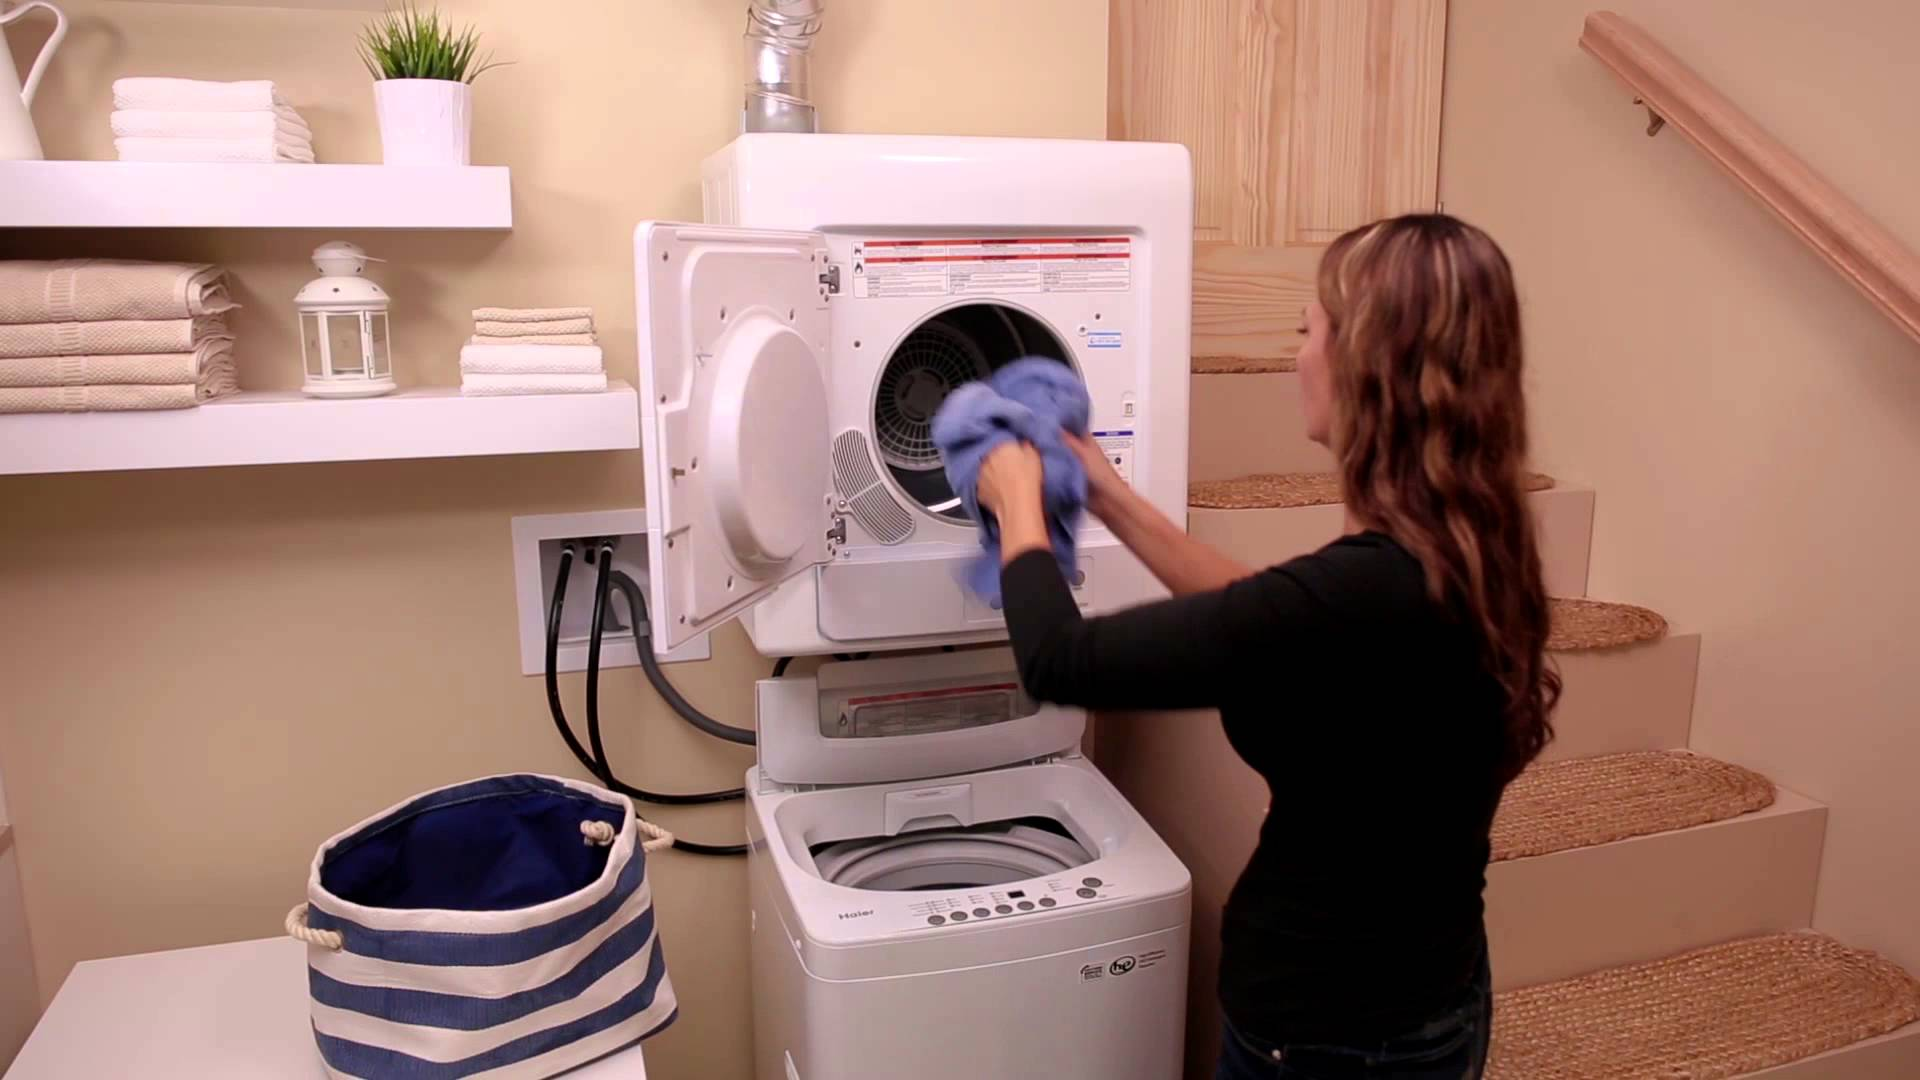 What Is the Difference Between A Condenser Dryer And A Vented Dryer?